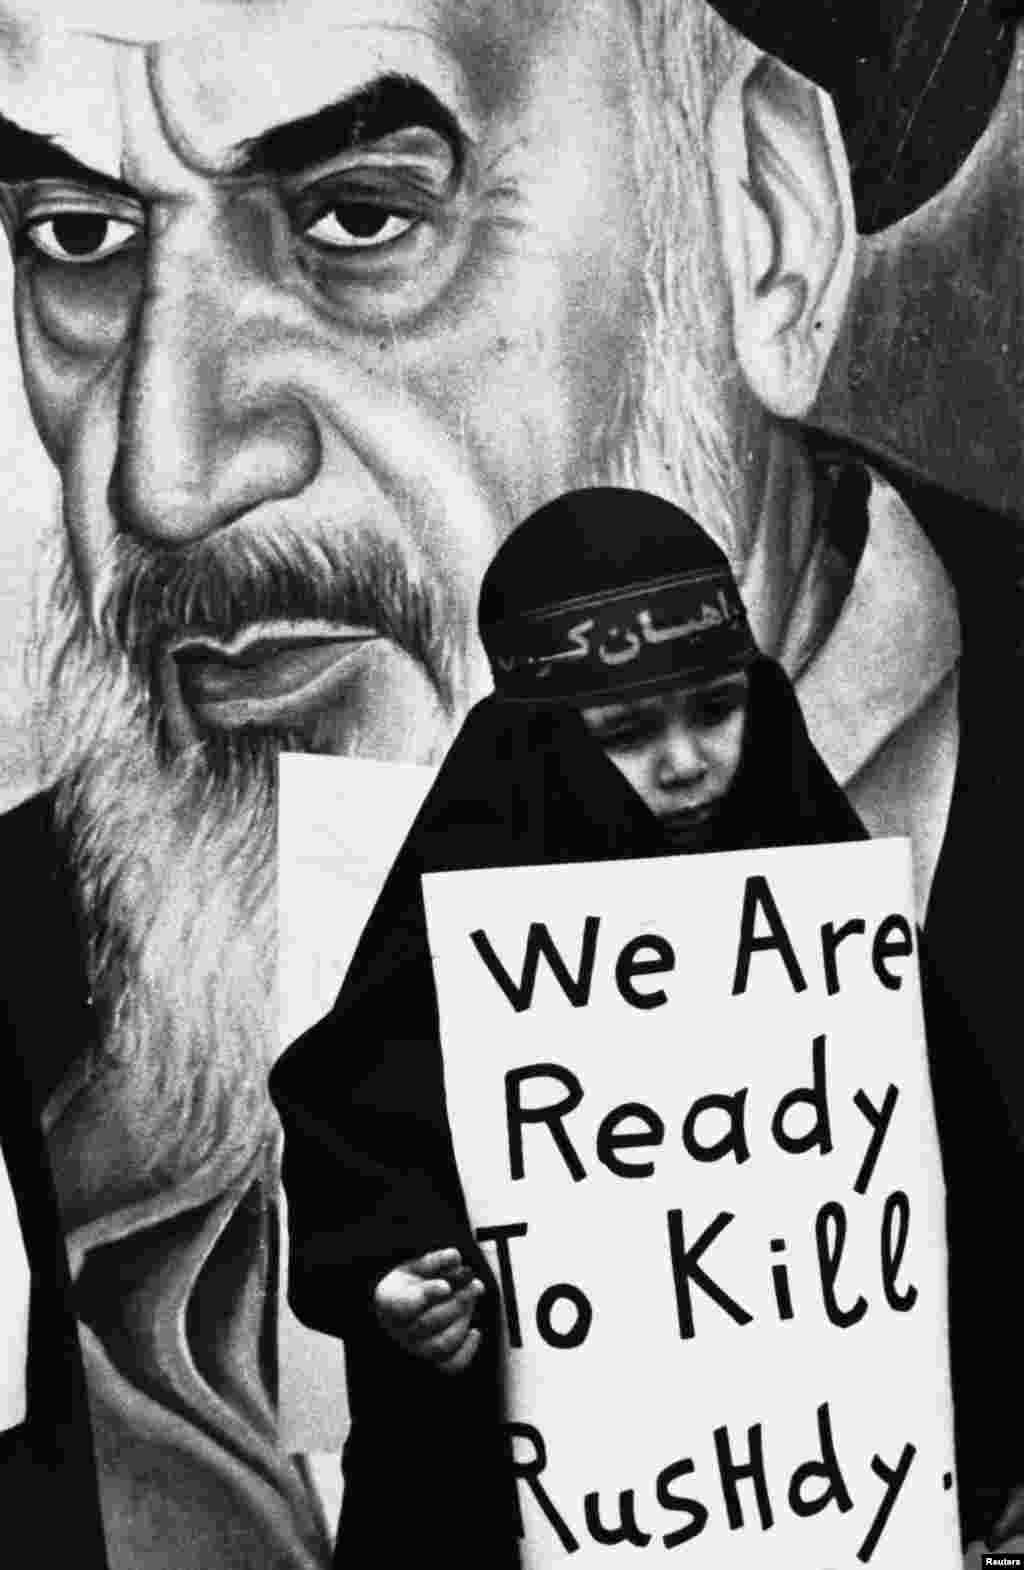 A black-clad girl carries a sign vowing to kill Rusdie during a pro-Iranian rally in Beirut's southern suburb one month after the Khomeini fatwa. (Reuters/stringer)